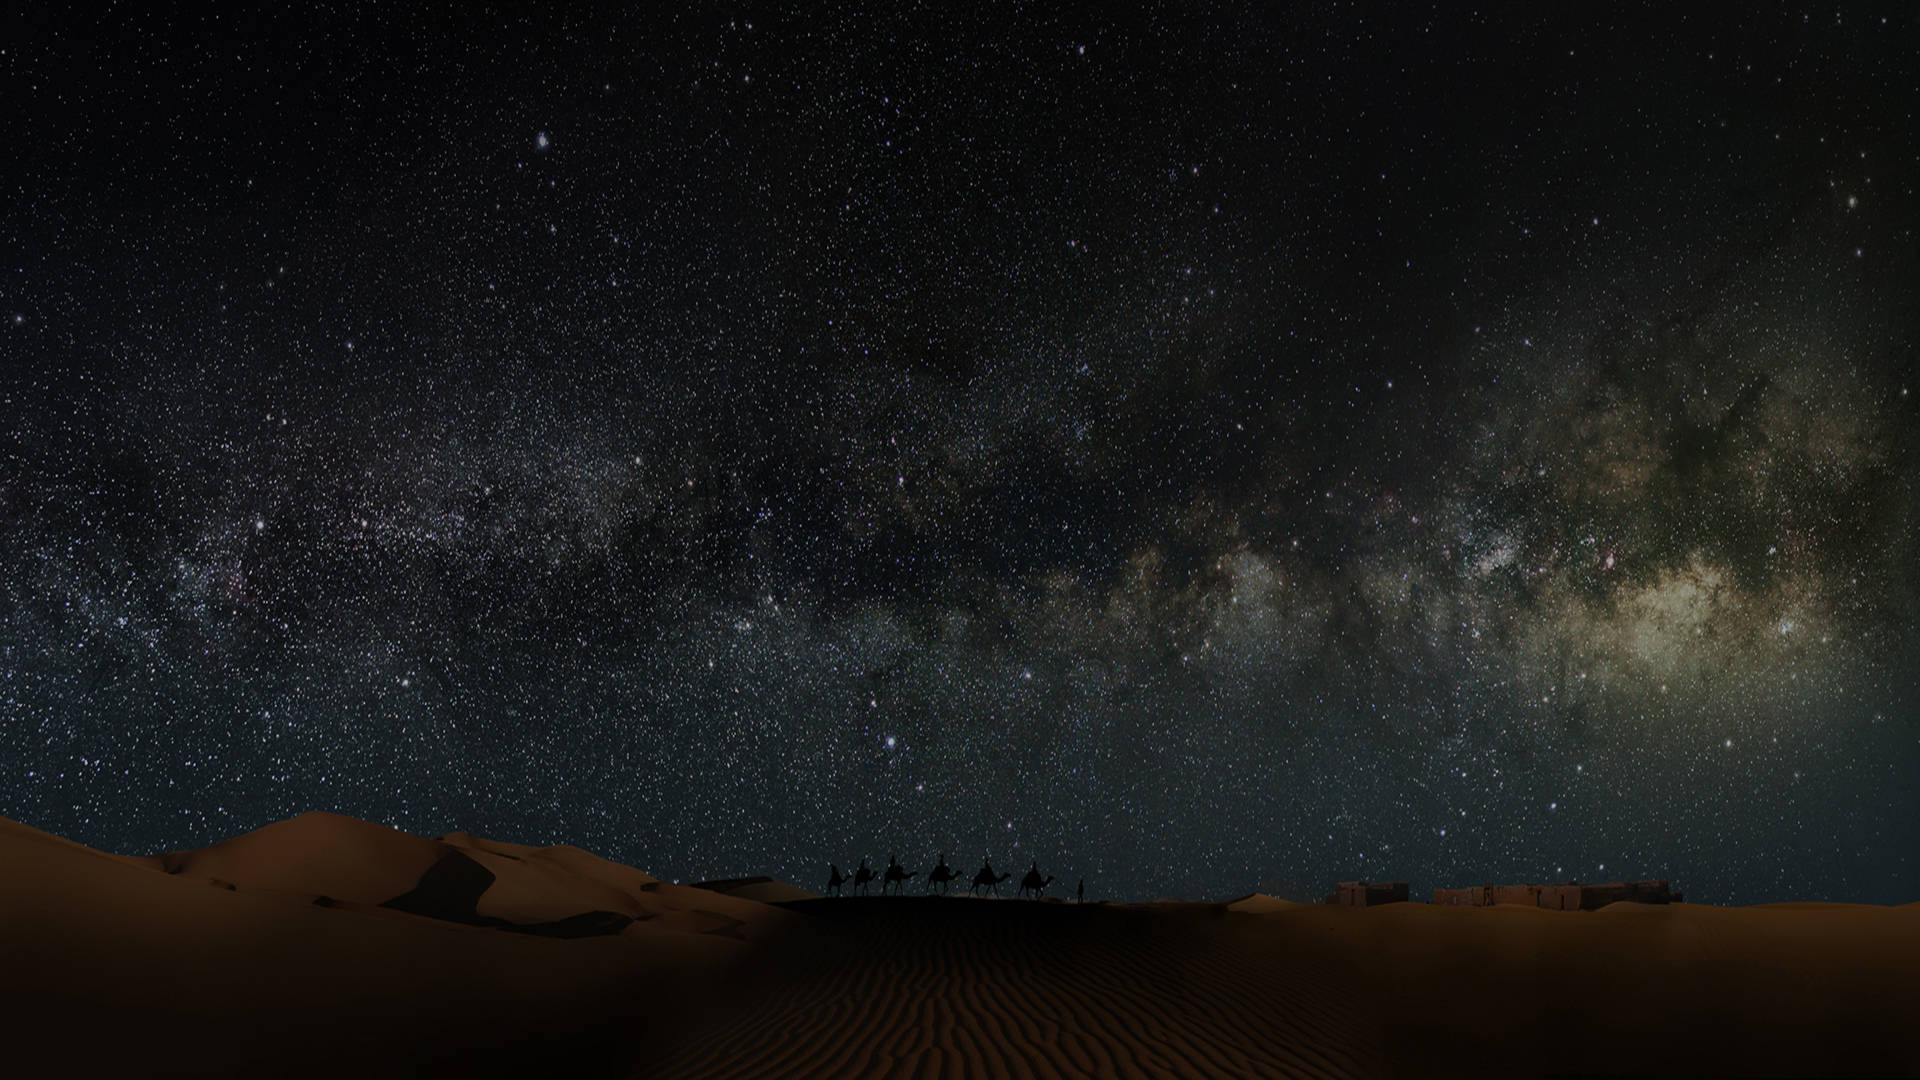 Sahara Desert In Scenery Night Wallpaper Hd Nature 4k